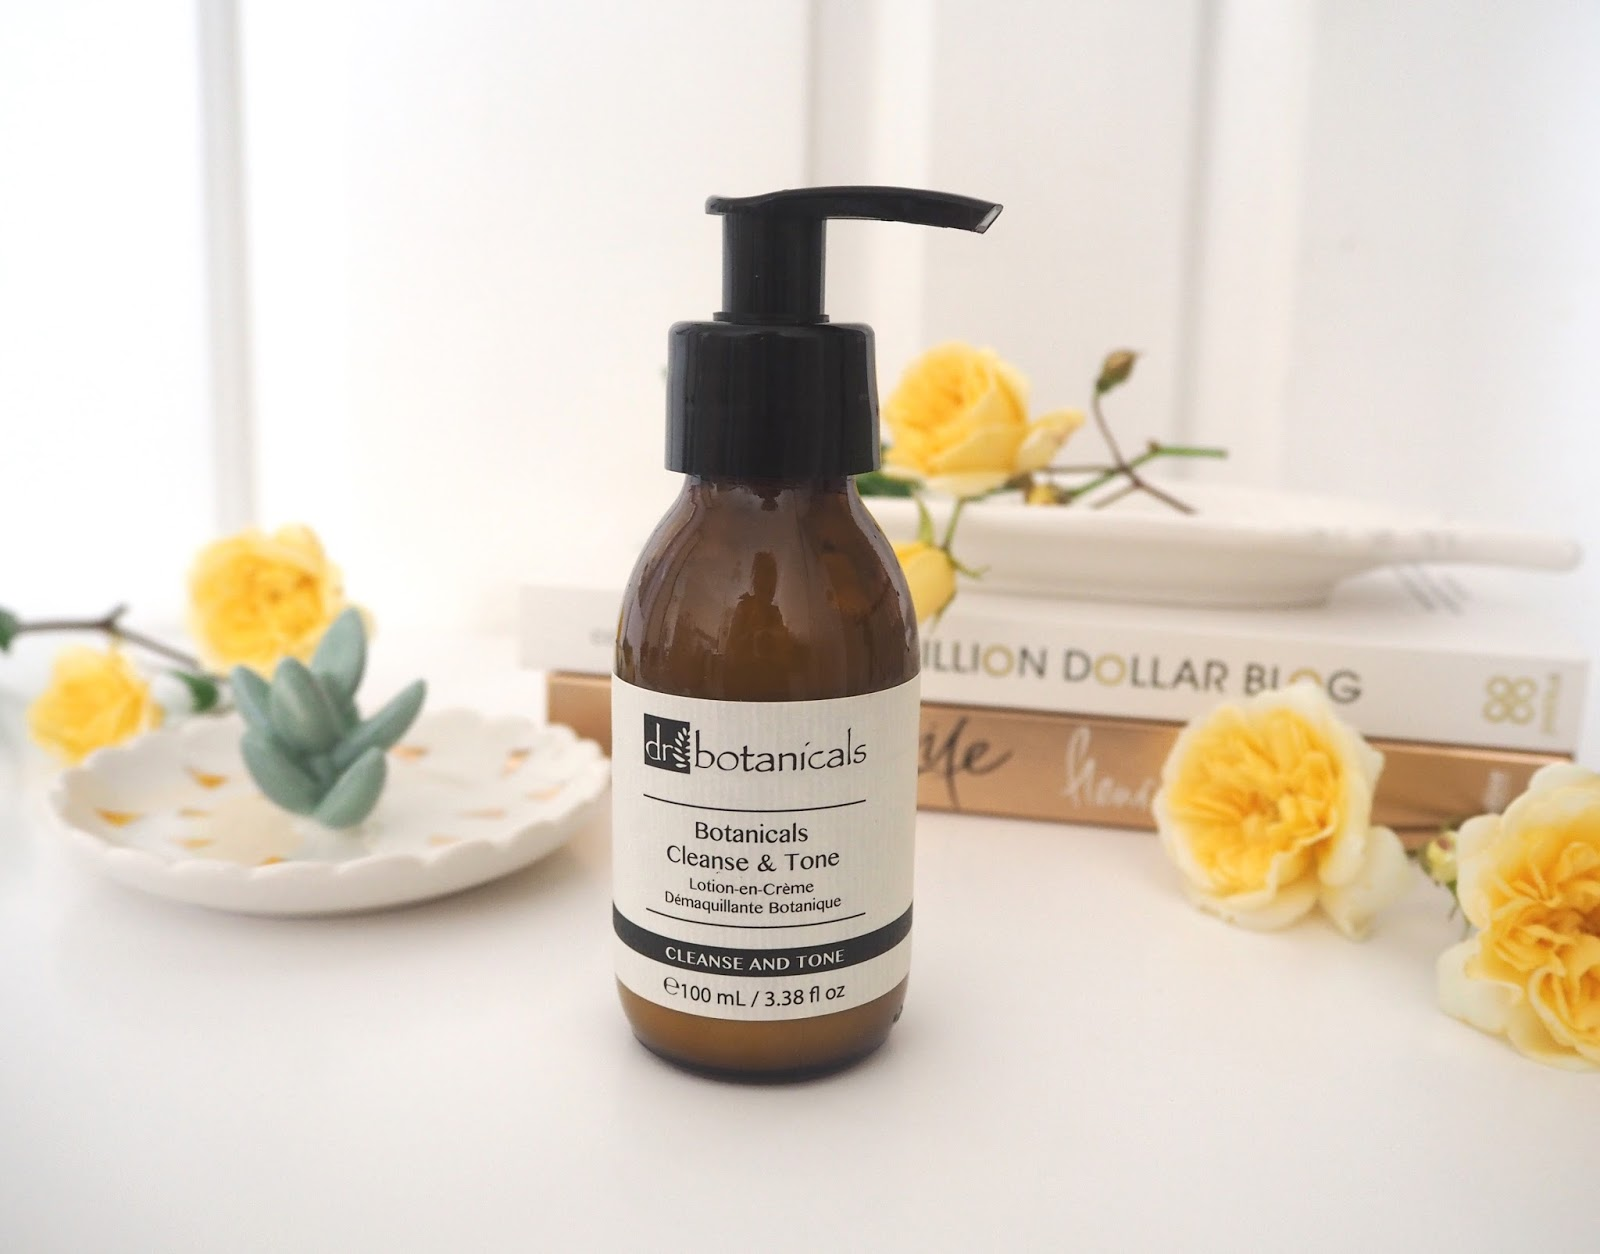 Dr Botanicals Cleanse & Tone 2-in-1 Cleanser, Katie Kirk Loves, Beauty Blogger, Dr Botanicals Skincare, UK Blogger, Skincare Review, Discount Code, Skincare Routine, Luxury Skincare Products, Facial Cleanser